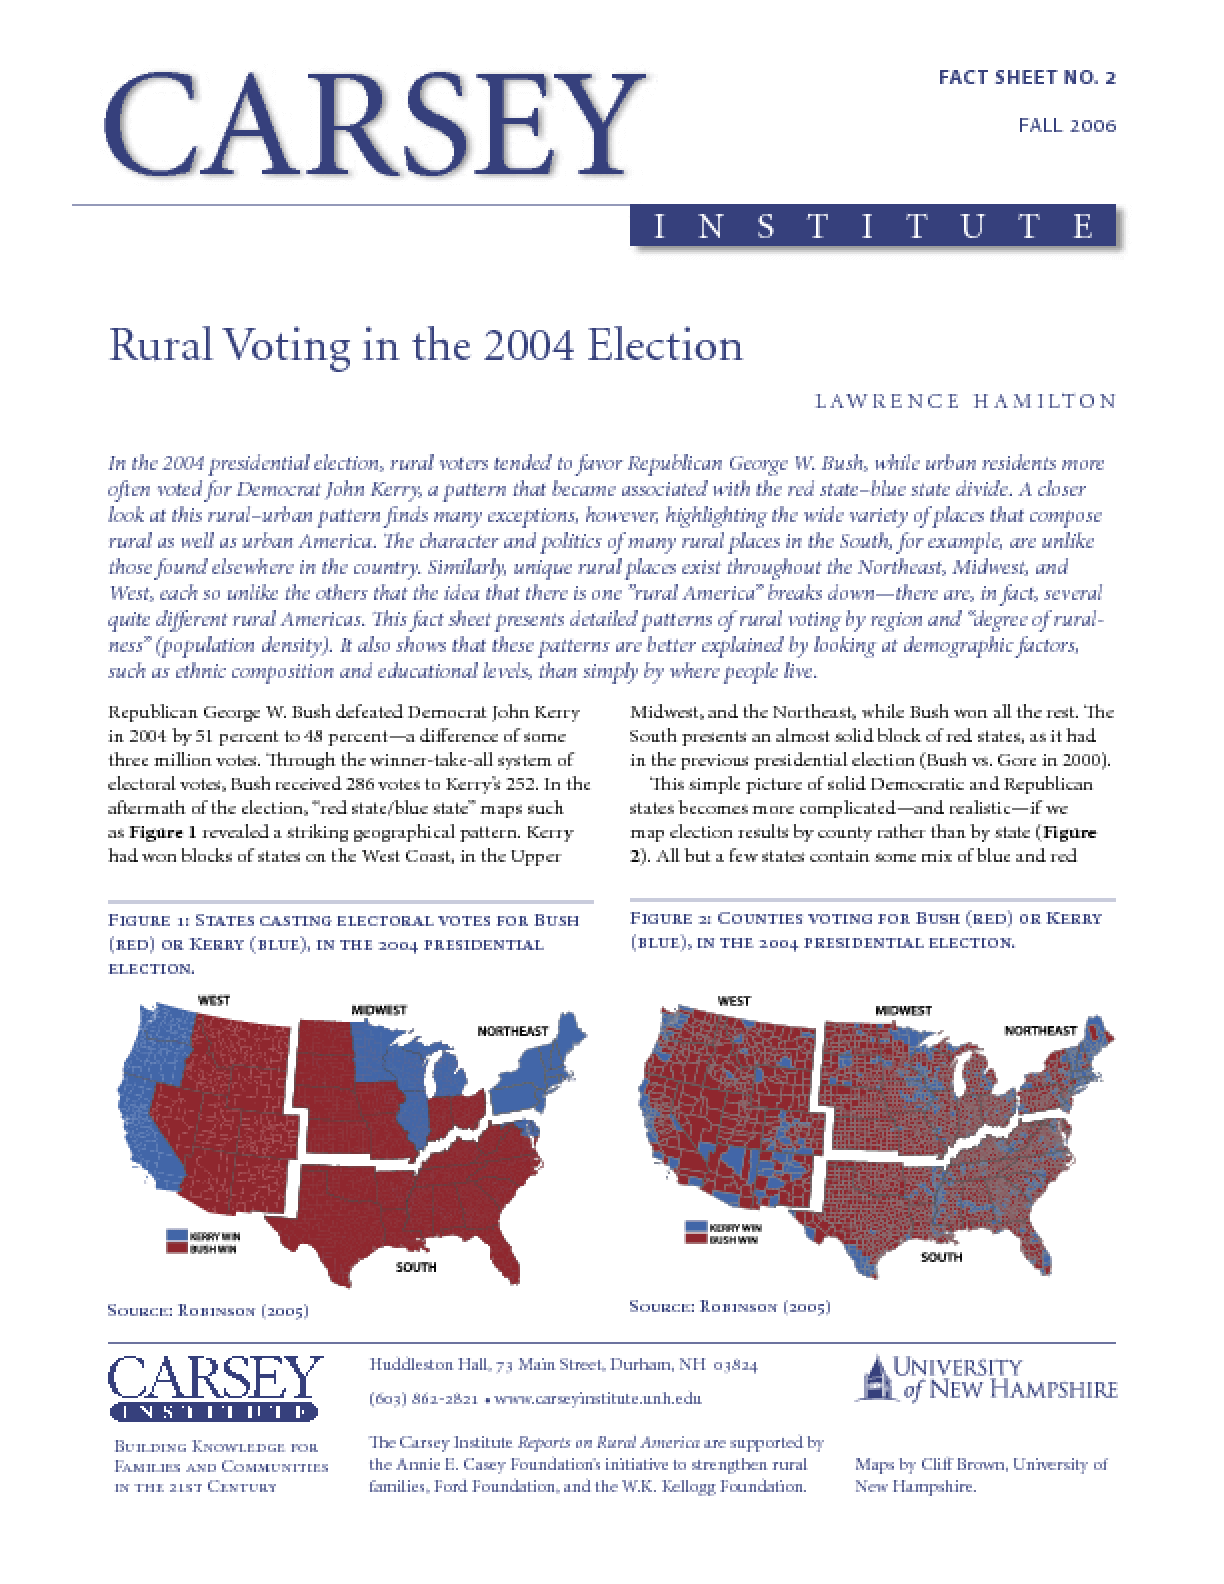 Rural Voting in the 2004 Election